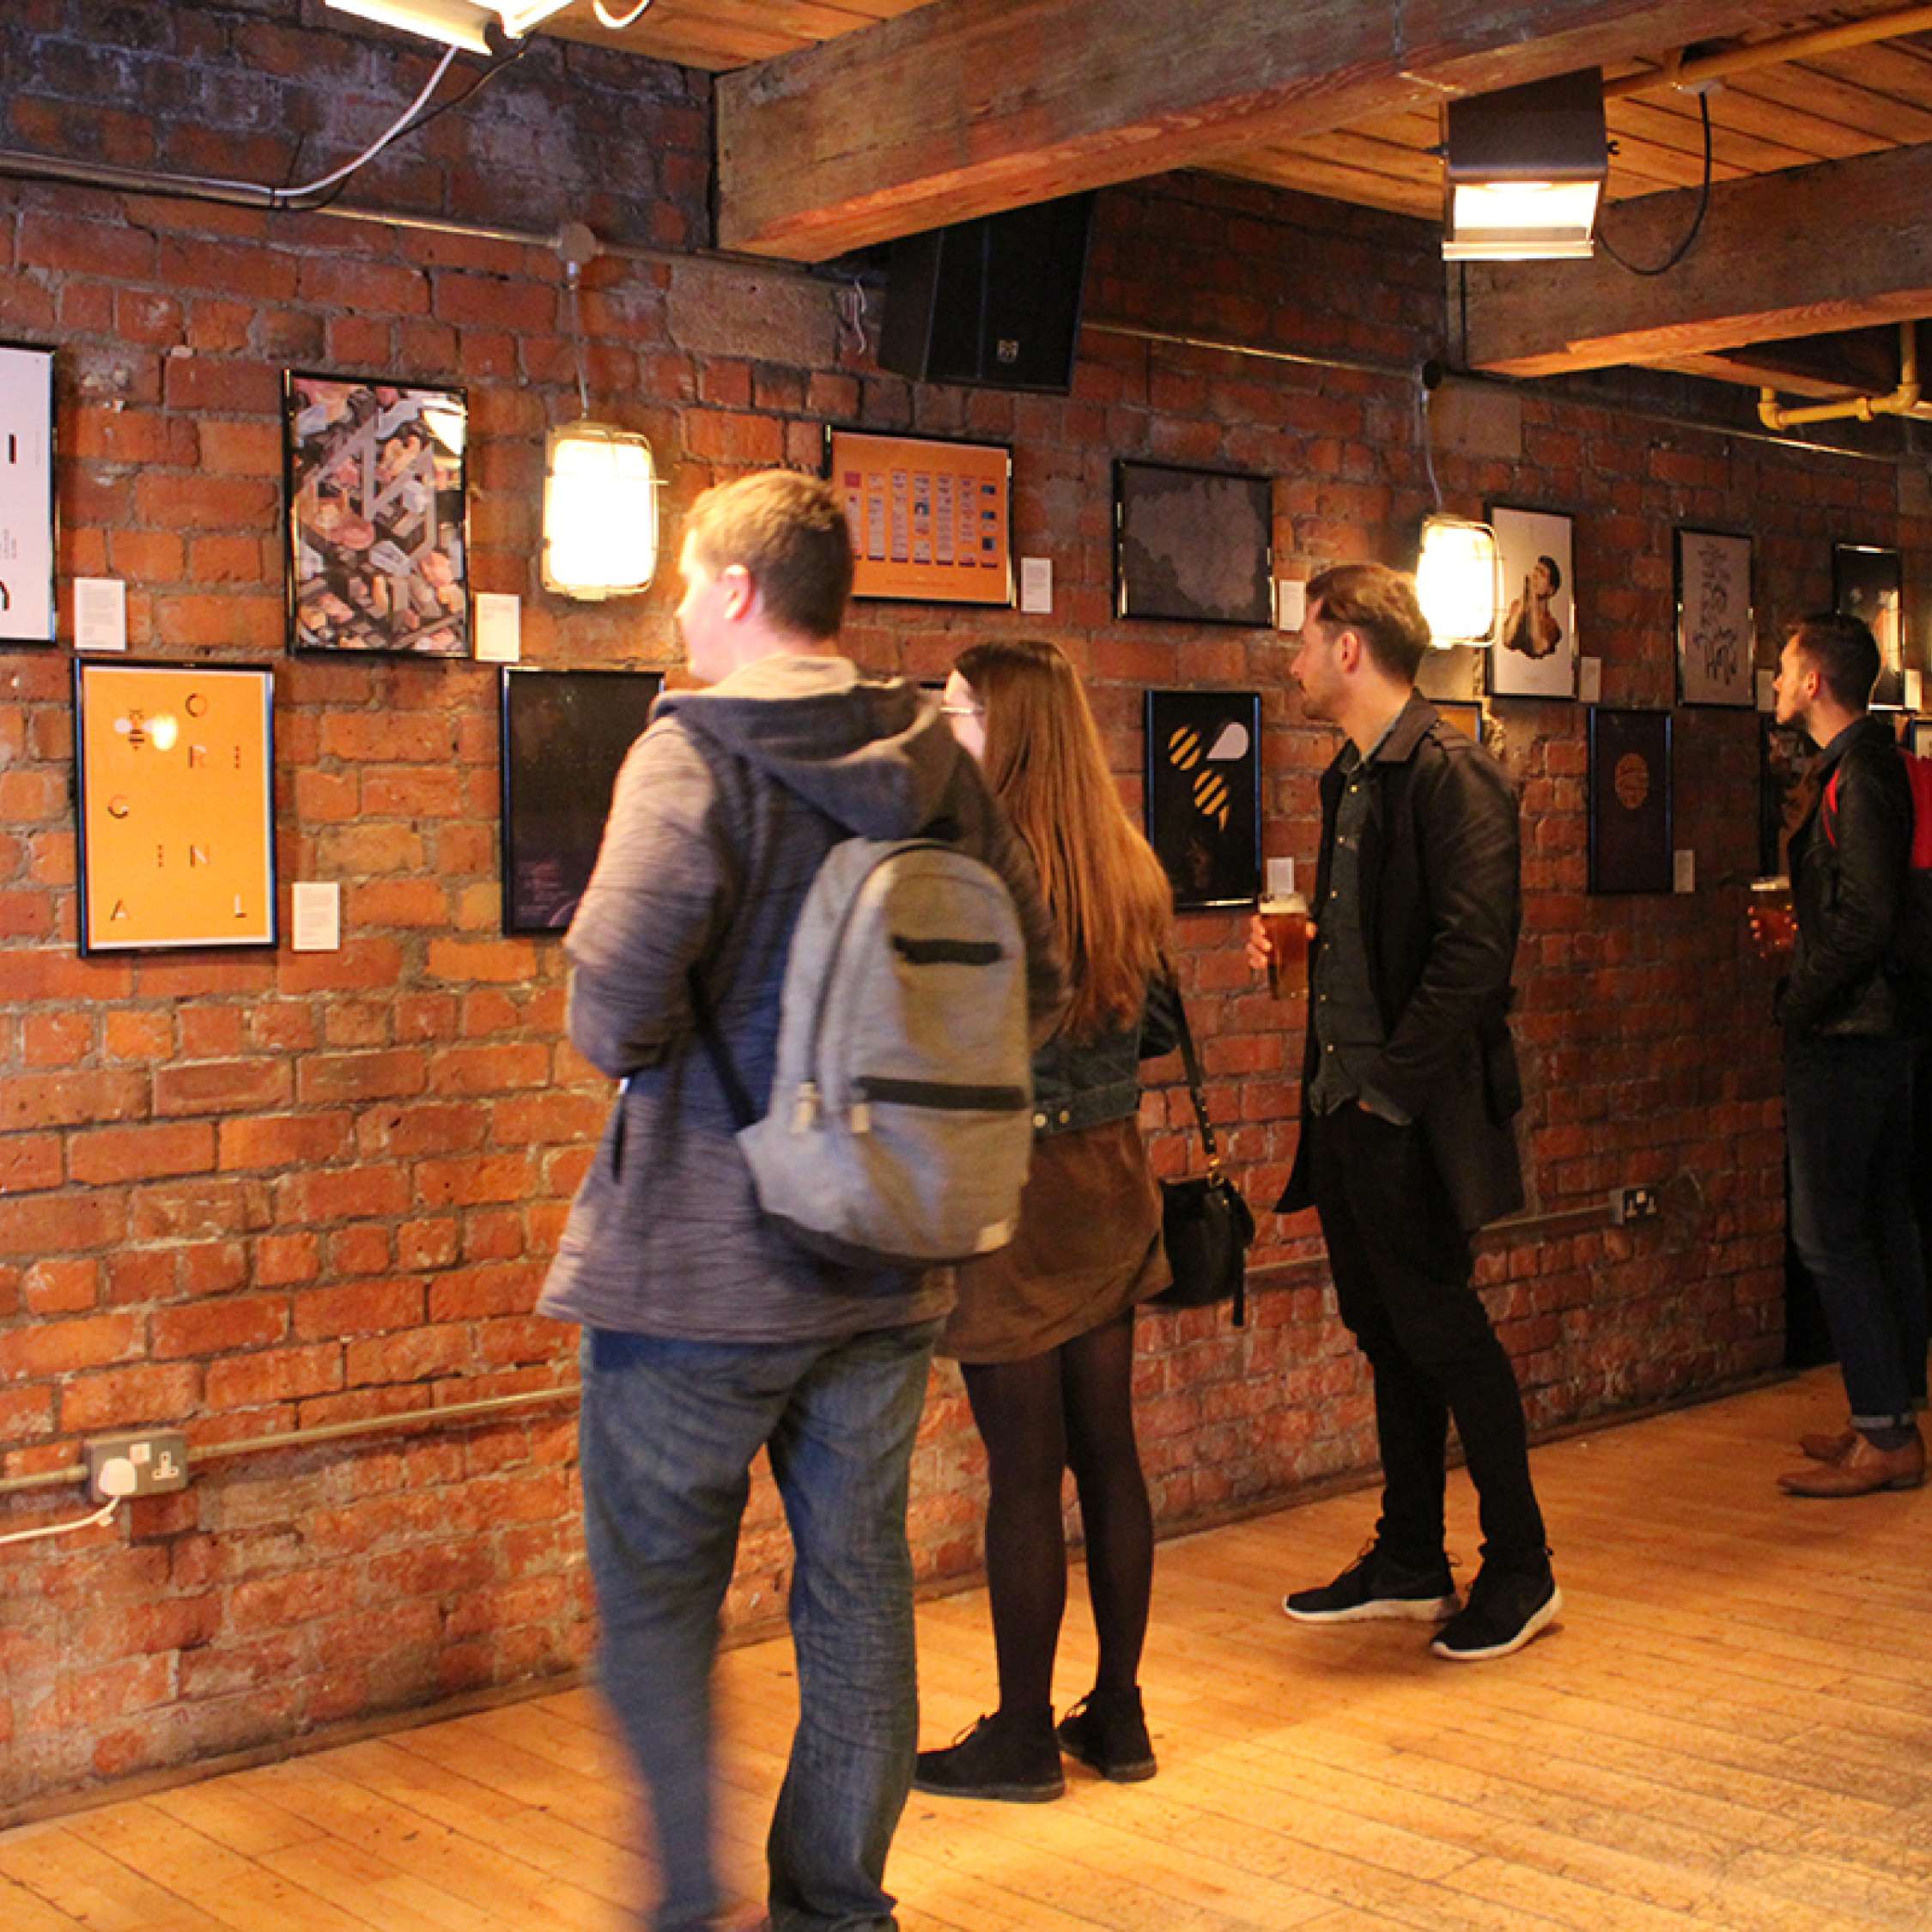 Manchester in Mind event, celebrating Manchester and the minds that make it